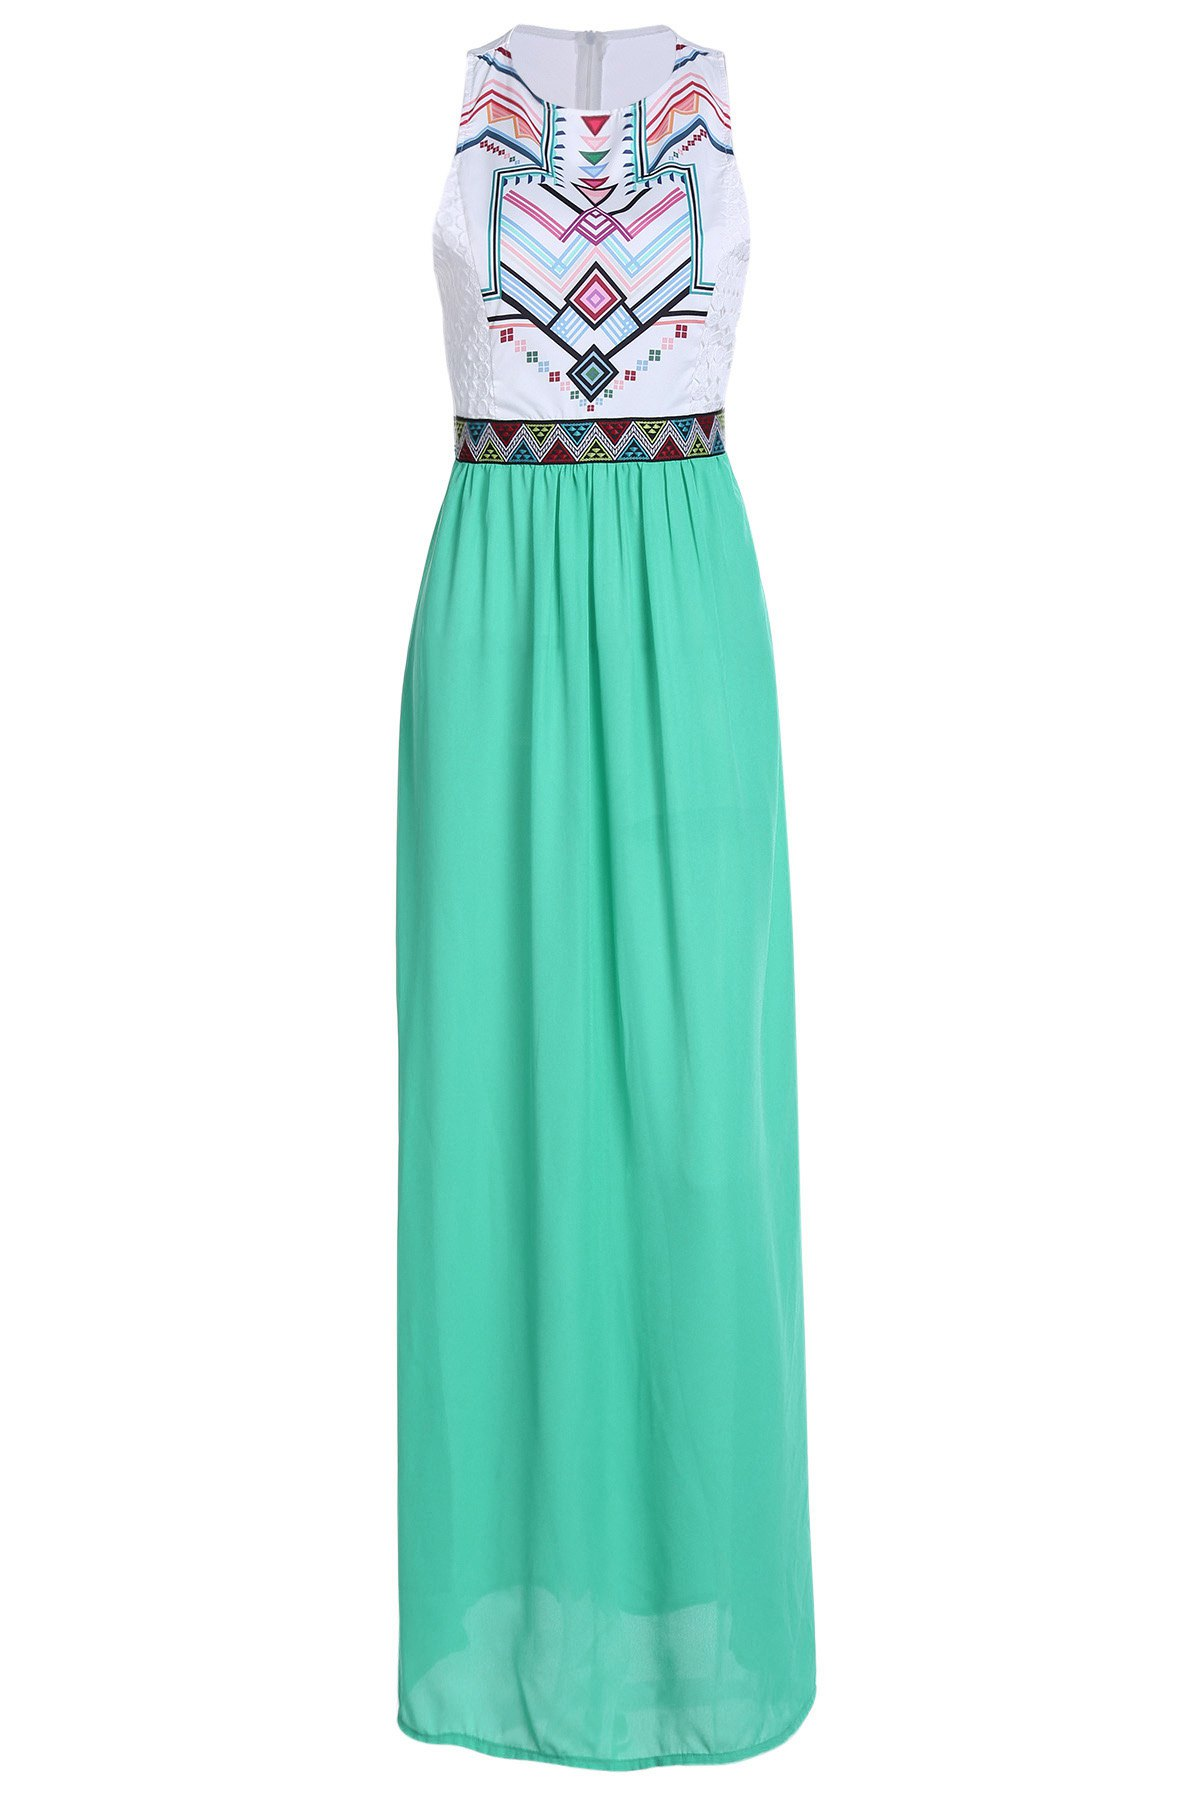 Jewel Neck Geometric Print Splicing Sleeveless Maxi Dress